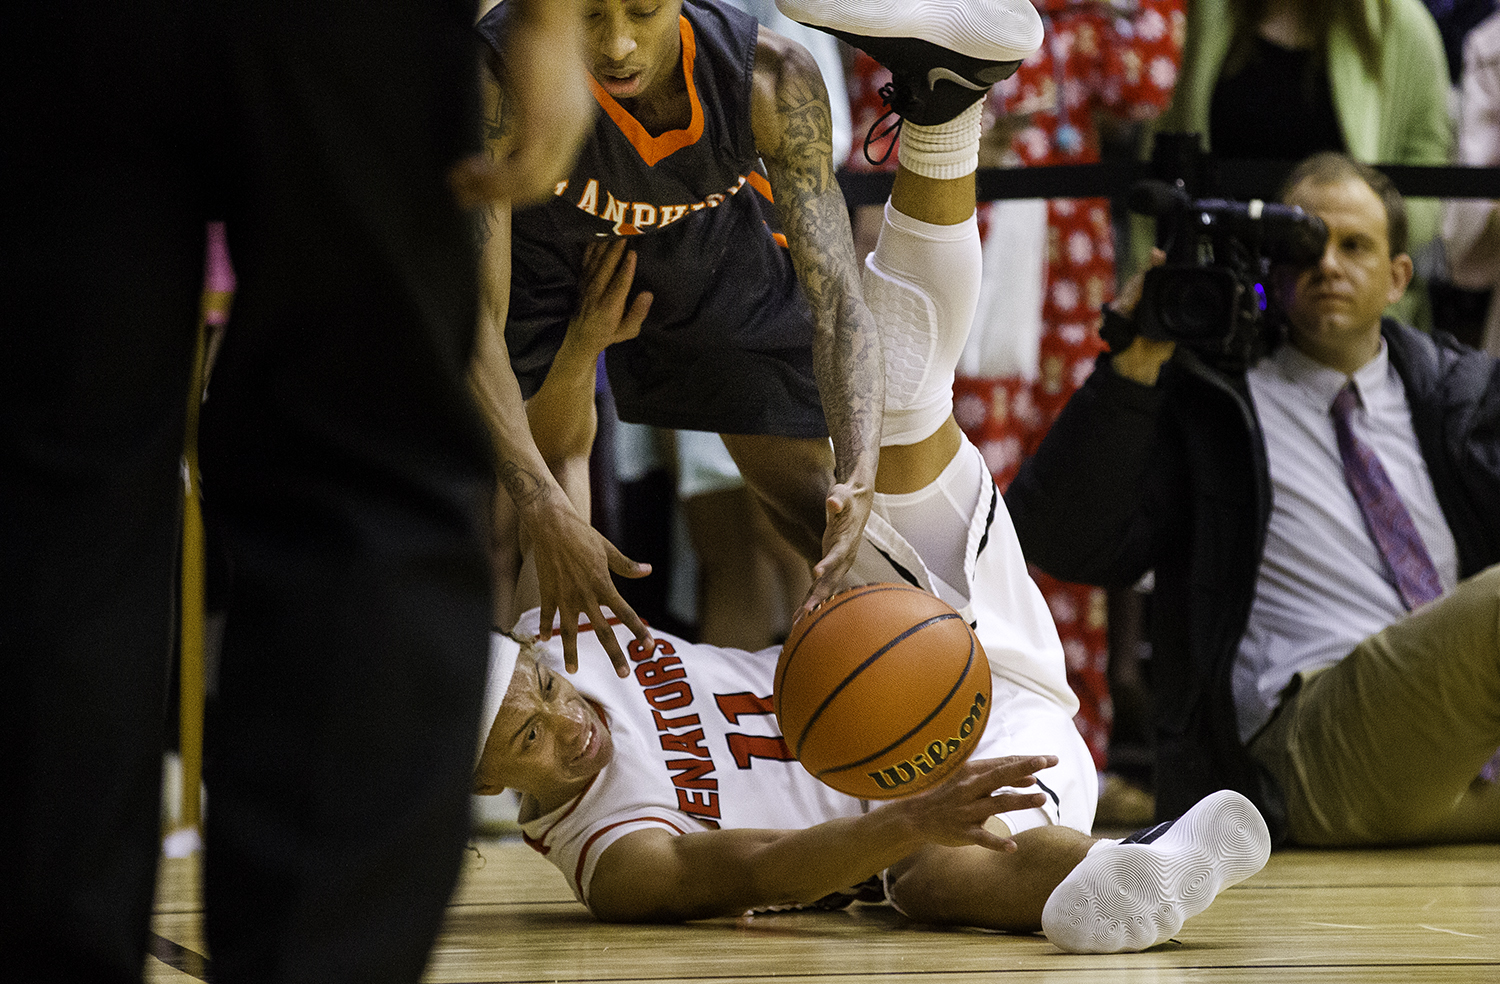 Springfield's Zaire Harris lunges for the ball after getting knocked down by Lanphier's Devione Rayford during the Boys City Tournament at the Bank of Springfield Center Thursday, Jan. 18, 2018. [Ted Schurter/The State Journal-Register]